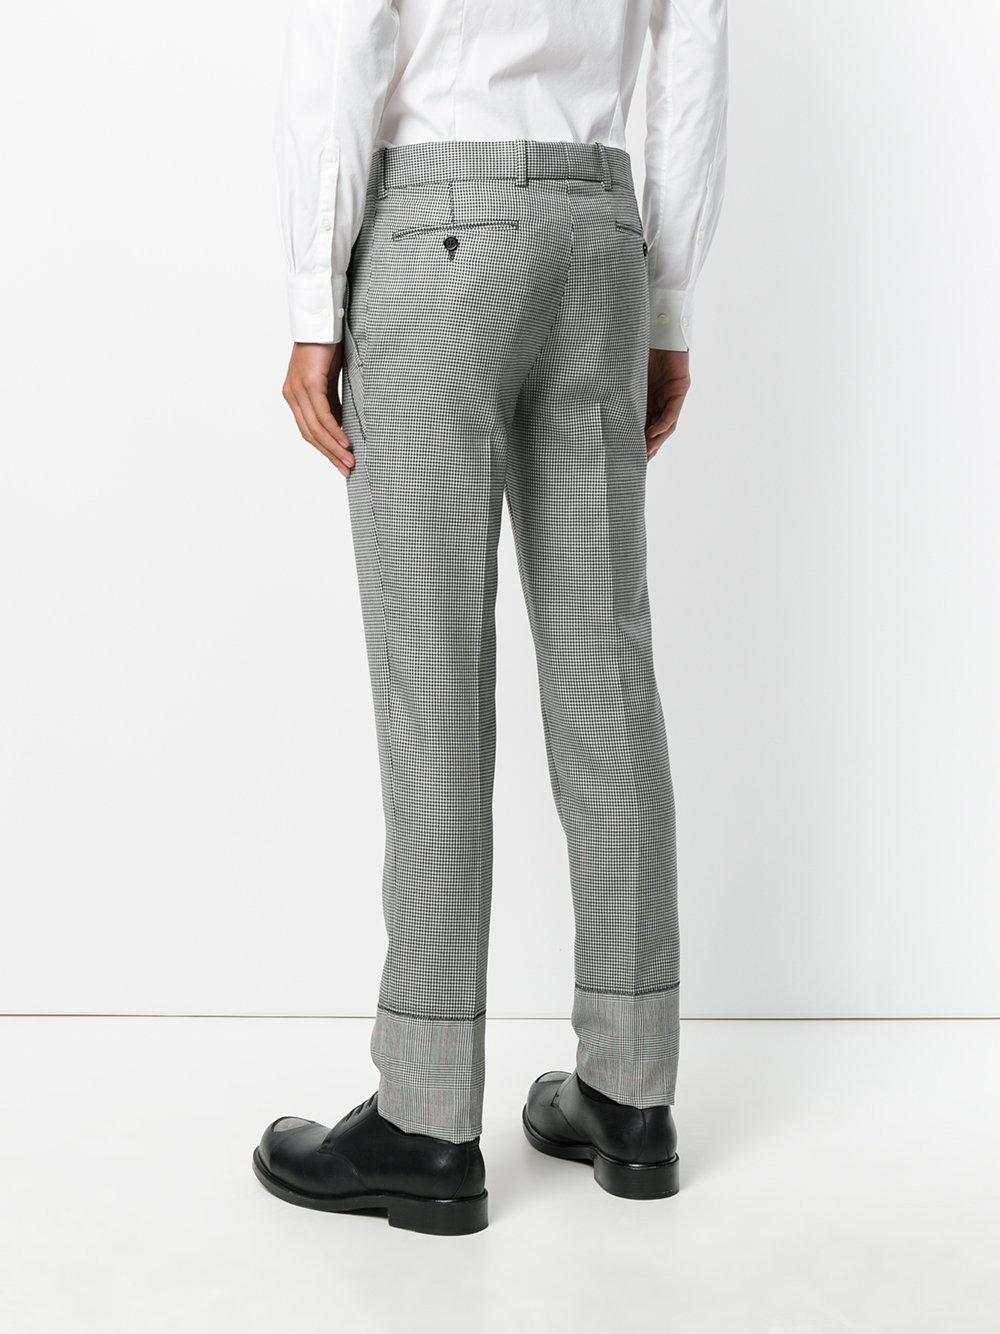 Alexander McQueen Wool Contrast Check Trousers in Black for Men